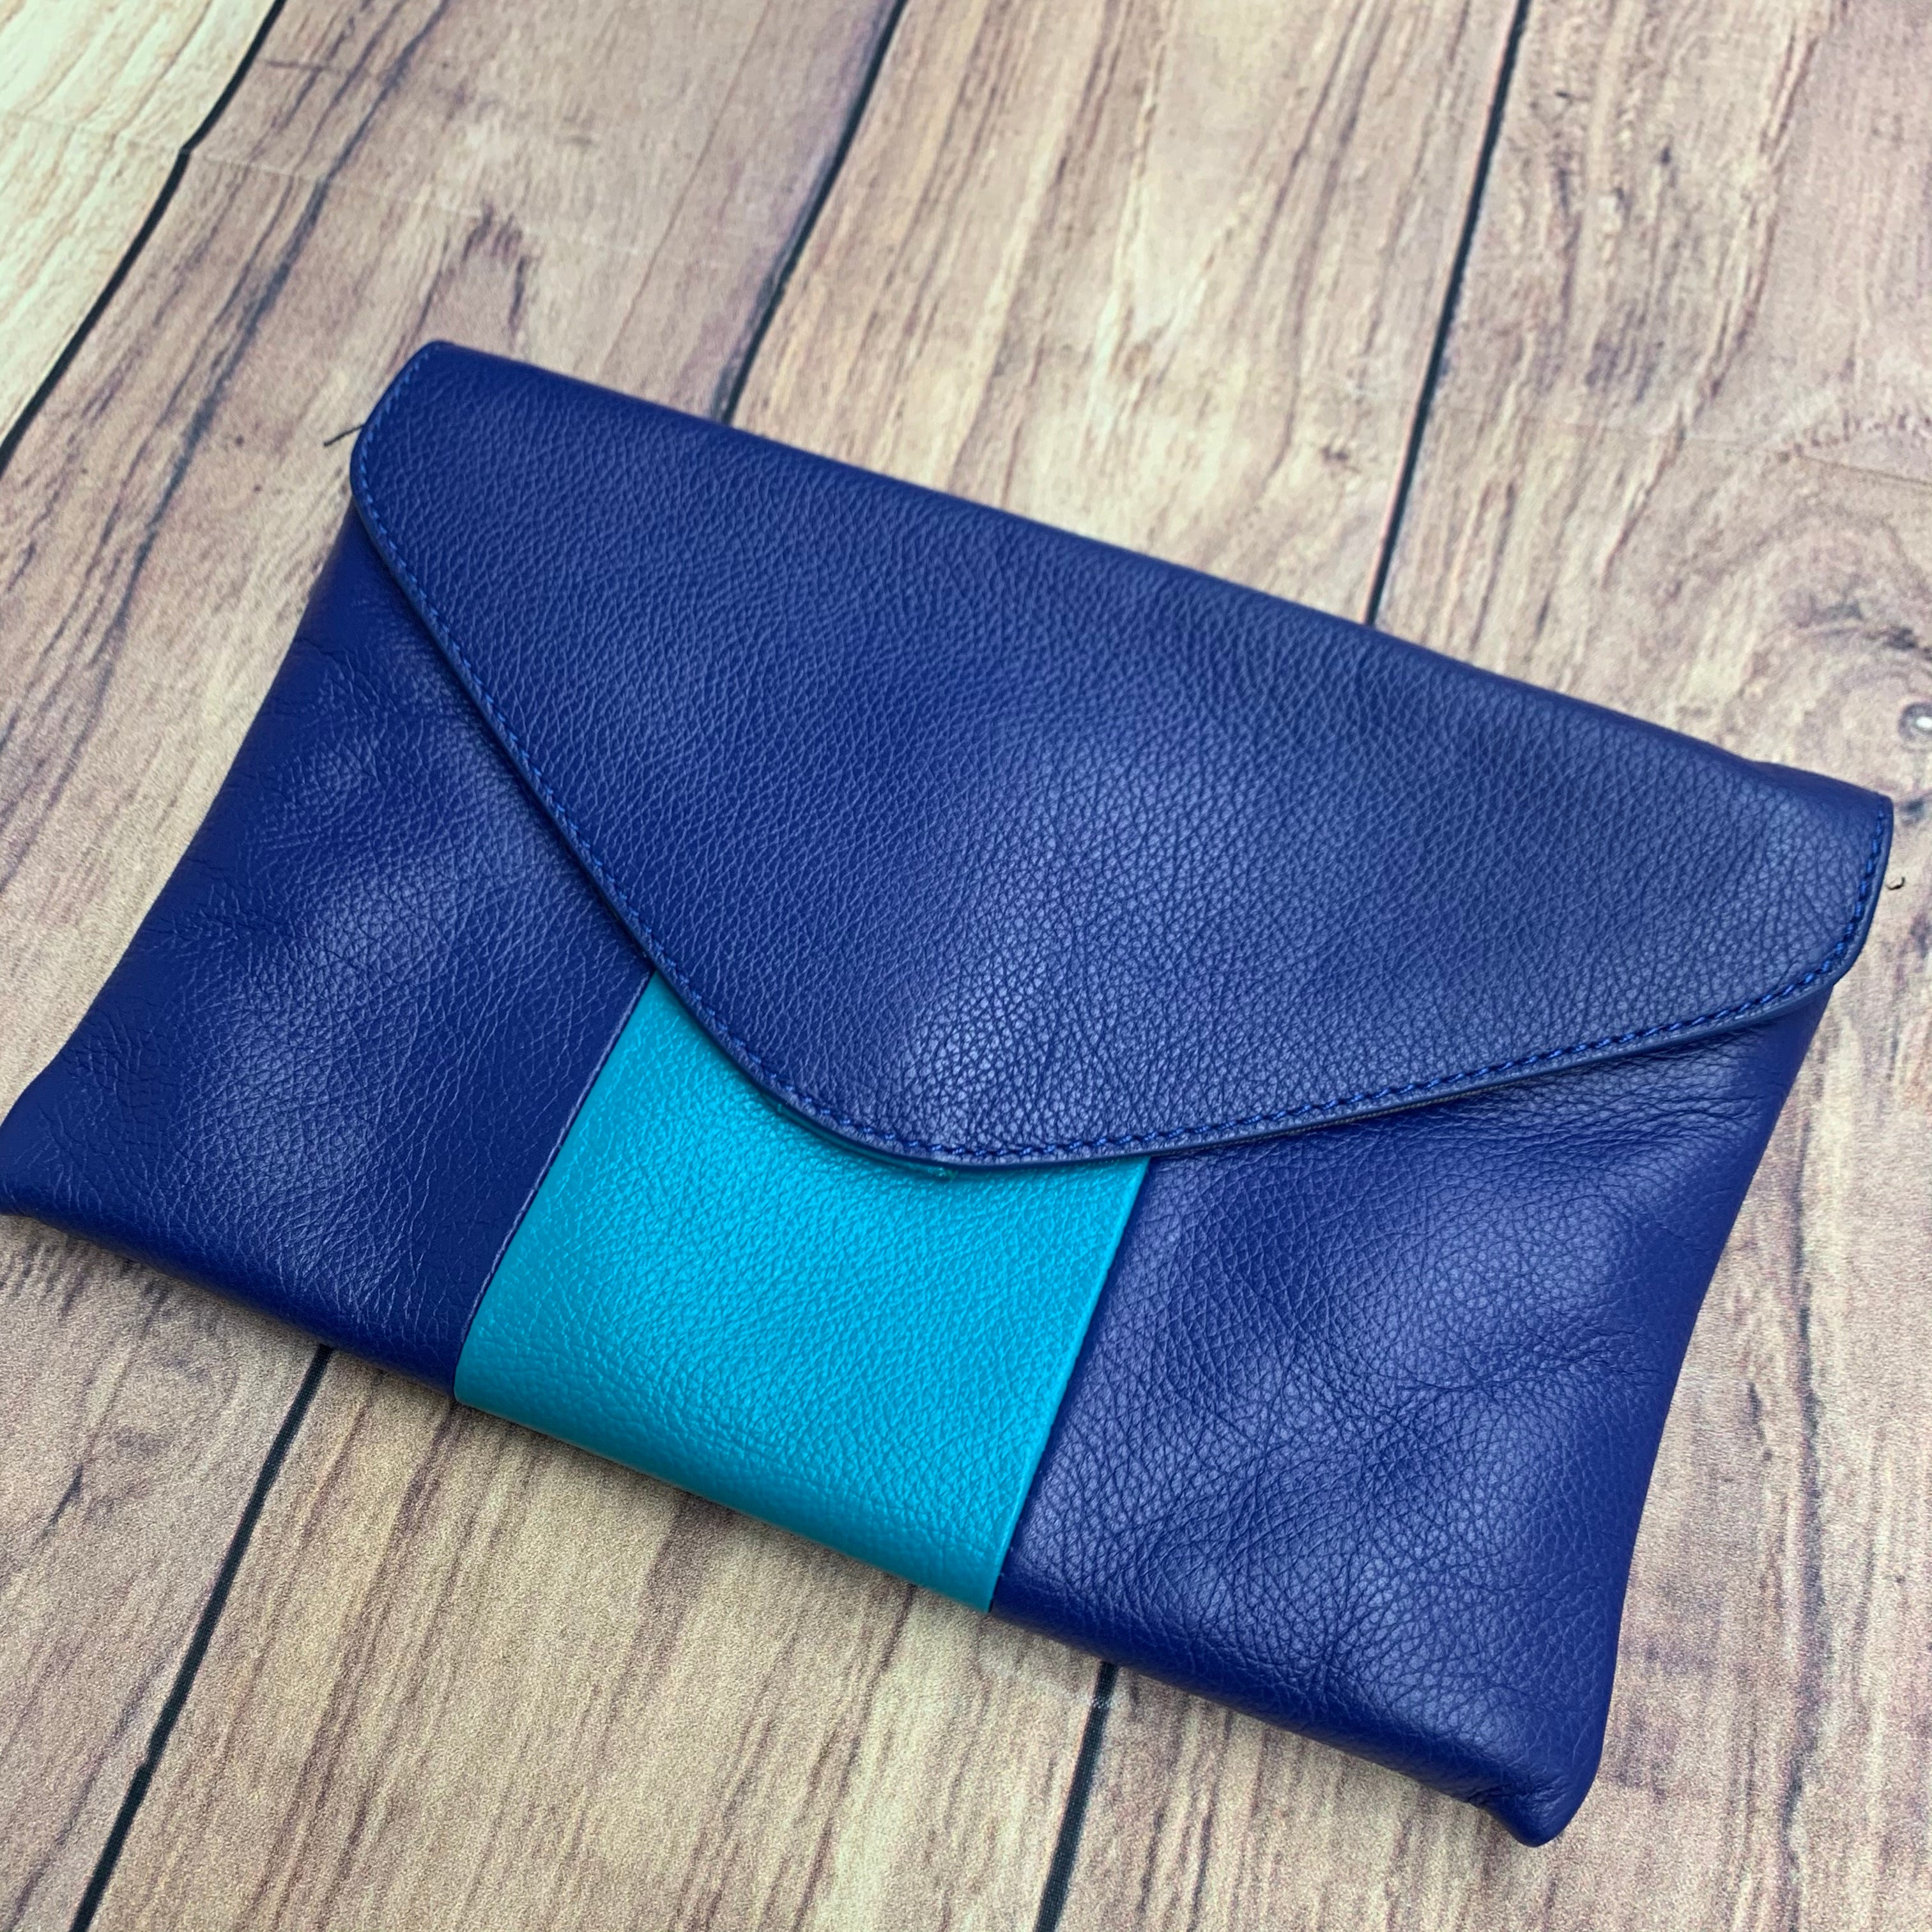 Primary Photo - BRAND: J CREW <BR>STYLE: CLUTCH <BR>COLOR: BLUE GREEN <BR>SKU: 257-25748-6173